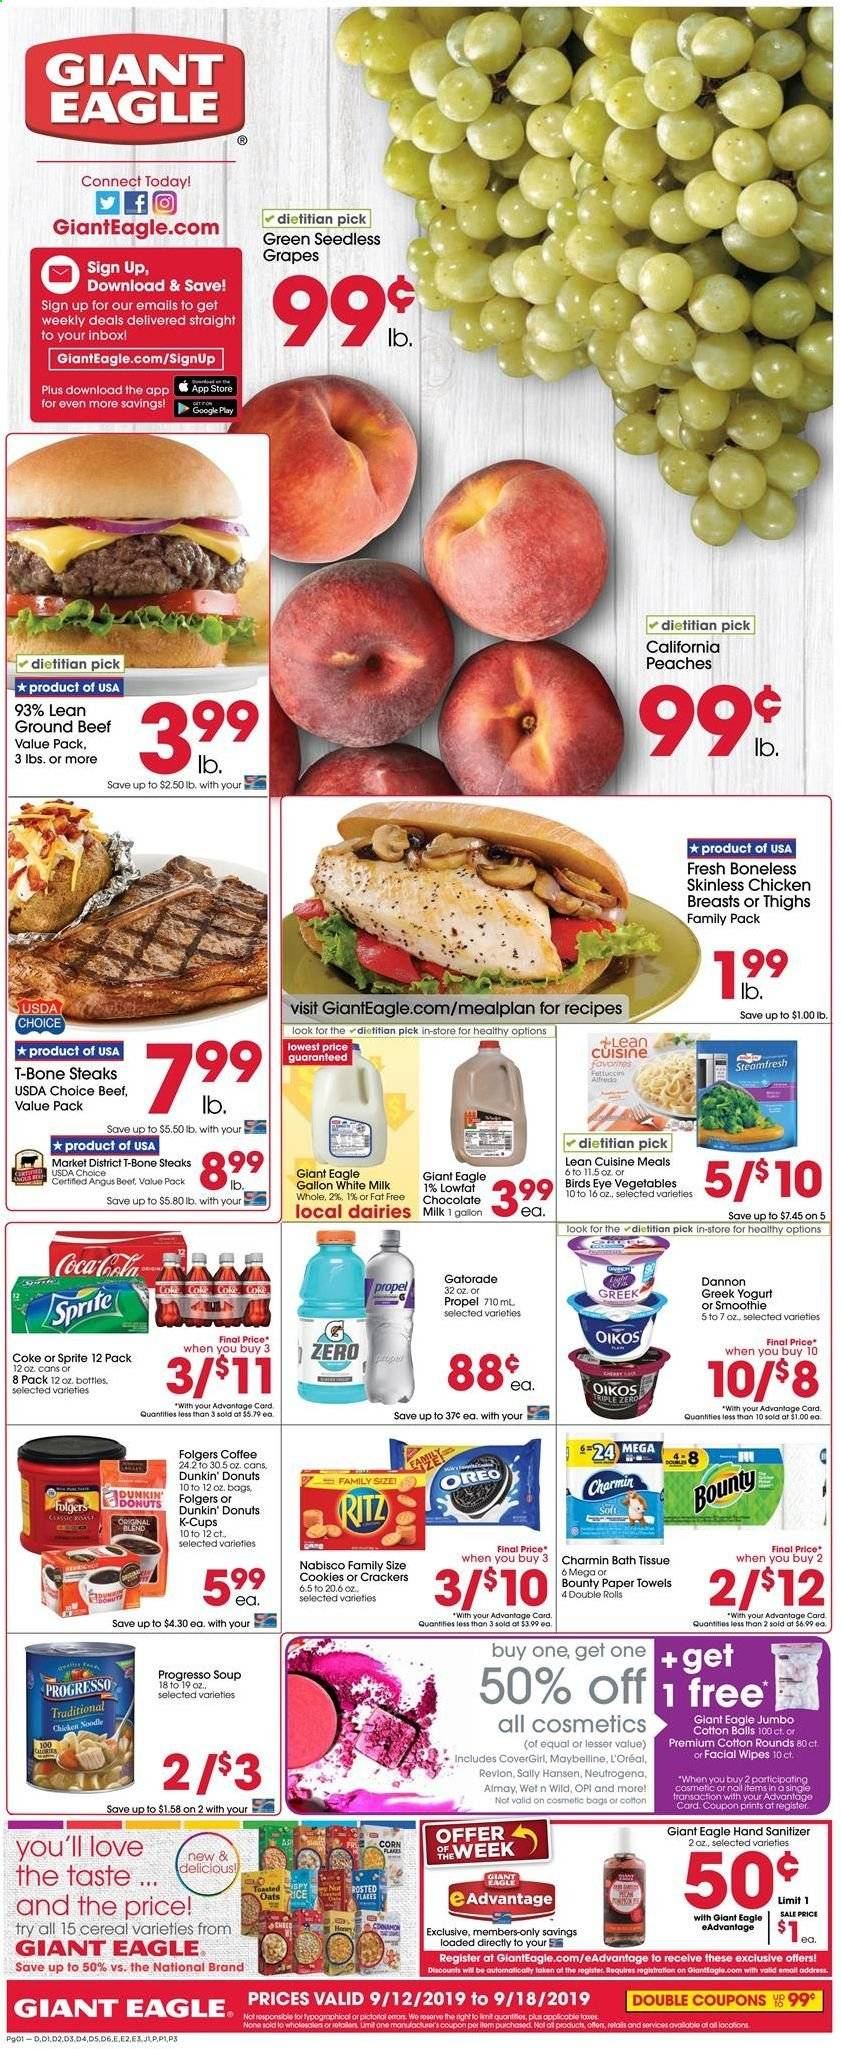 Giant Eagle Flyer  - 09.12.2019 - 09.18.2019. Page 1.